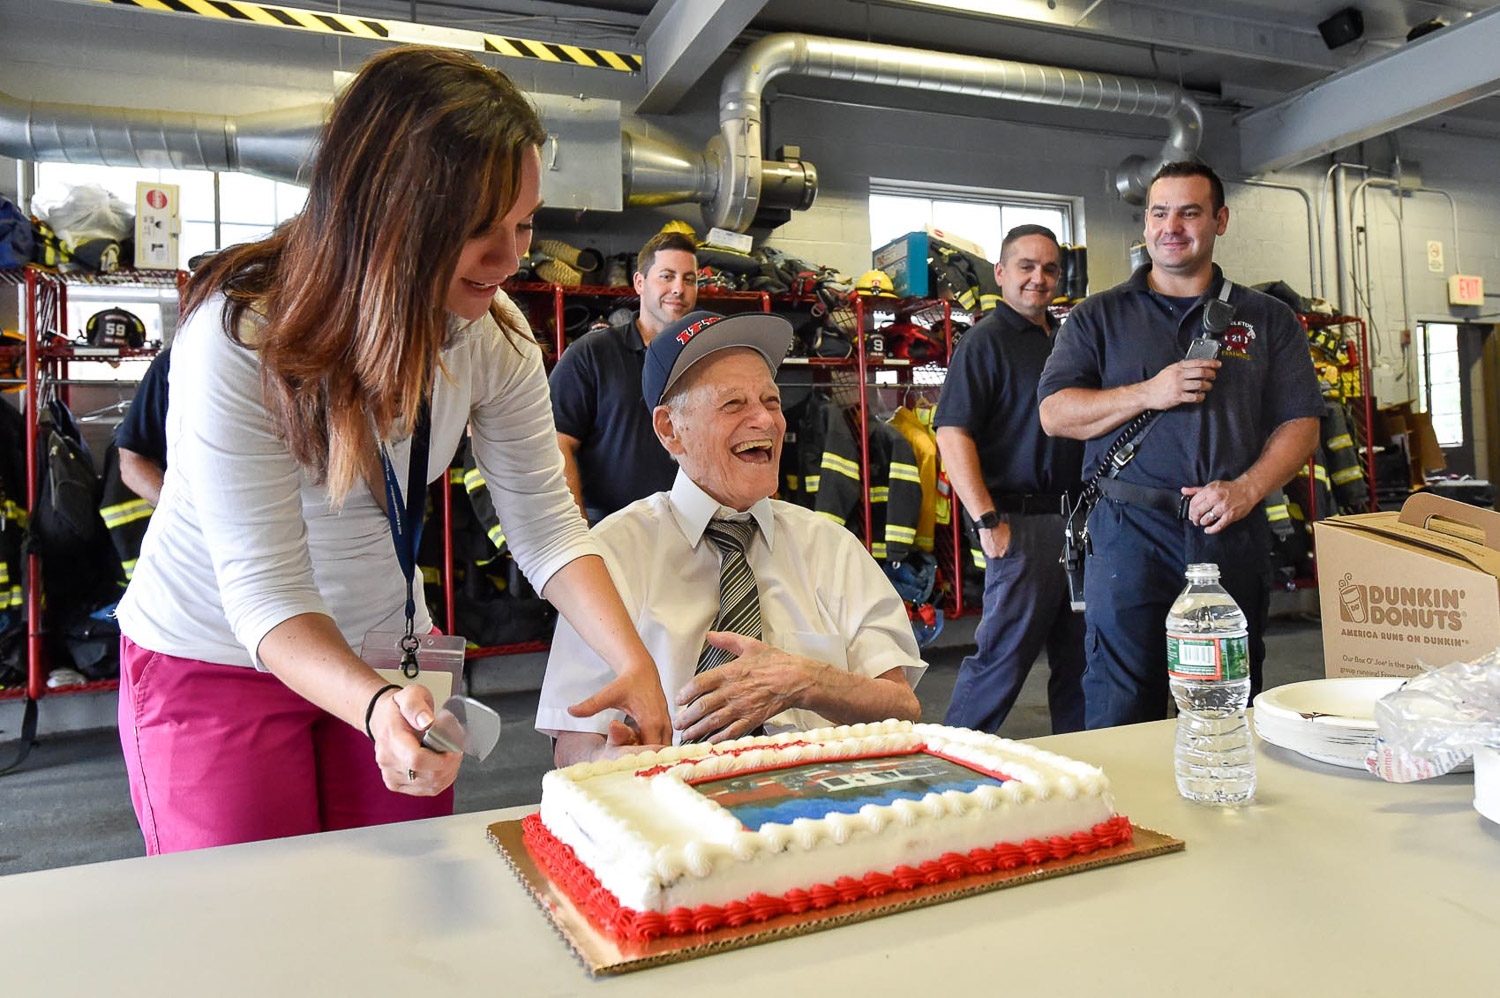 6 of 9 Maureen Brancato, Hospice Nurse at Compassus prepares the cake for Bobby Jensen, a honorary Middleton firefighter, to cut during his visit to the Middleton Fire Department, Thursday, Sept. 14, 2017. [Wicked Local Photo / David Sokol]